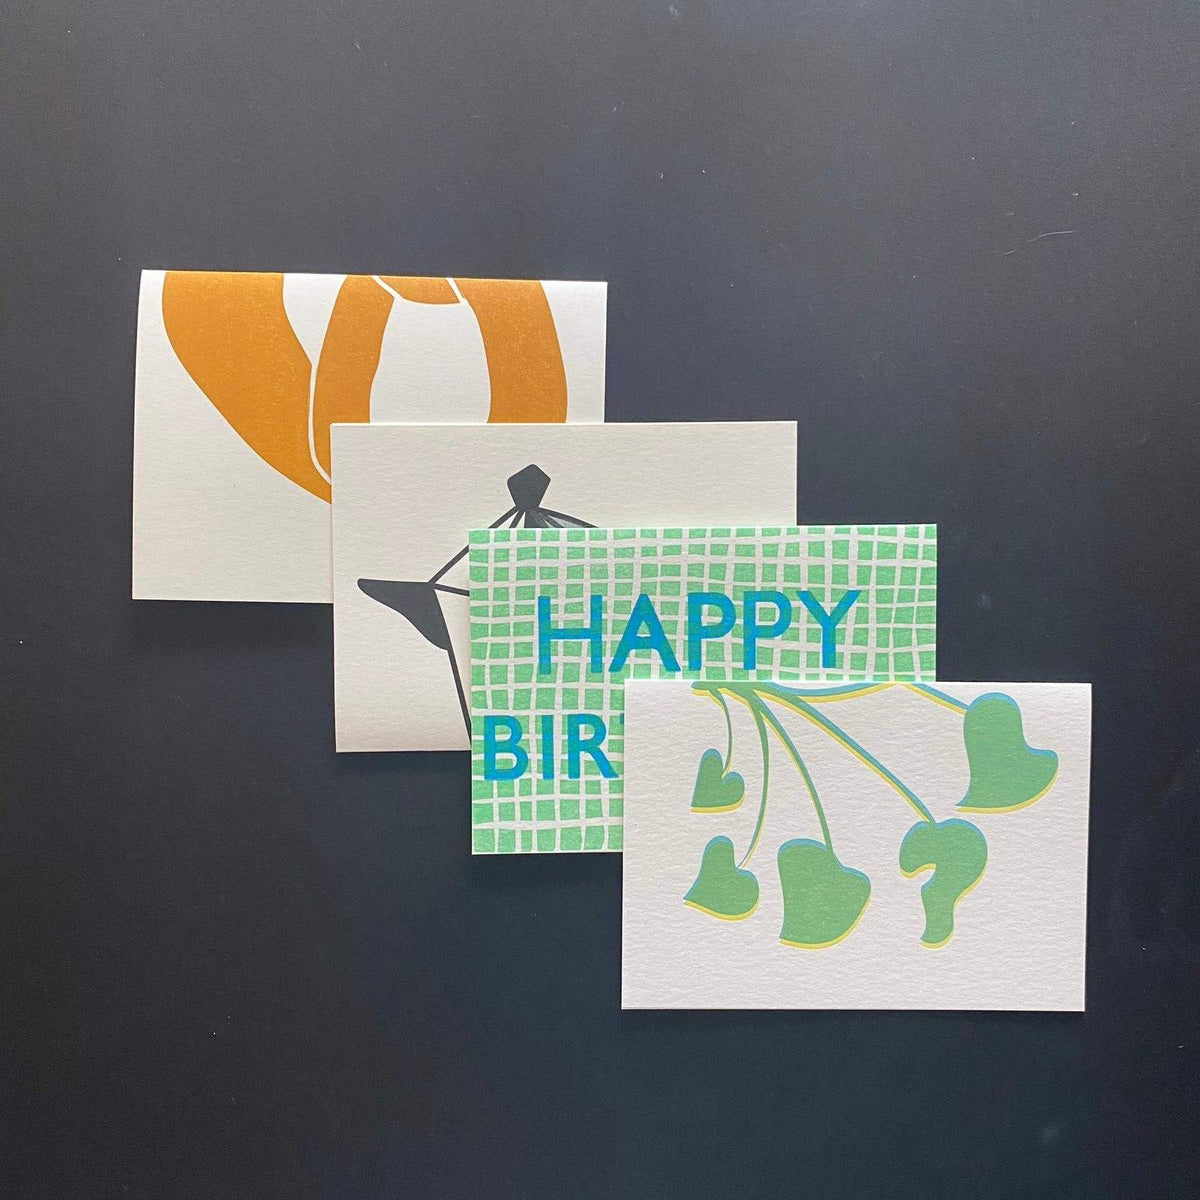 Greetings cards - designed by Takako Copeland